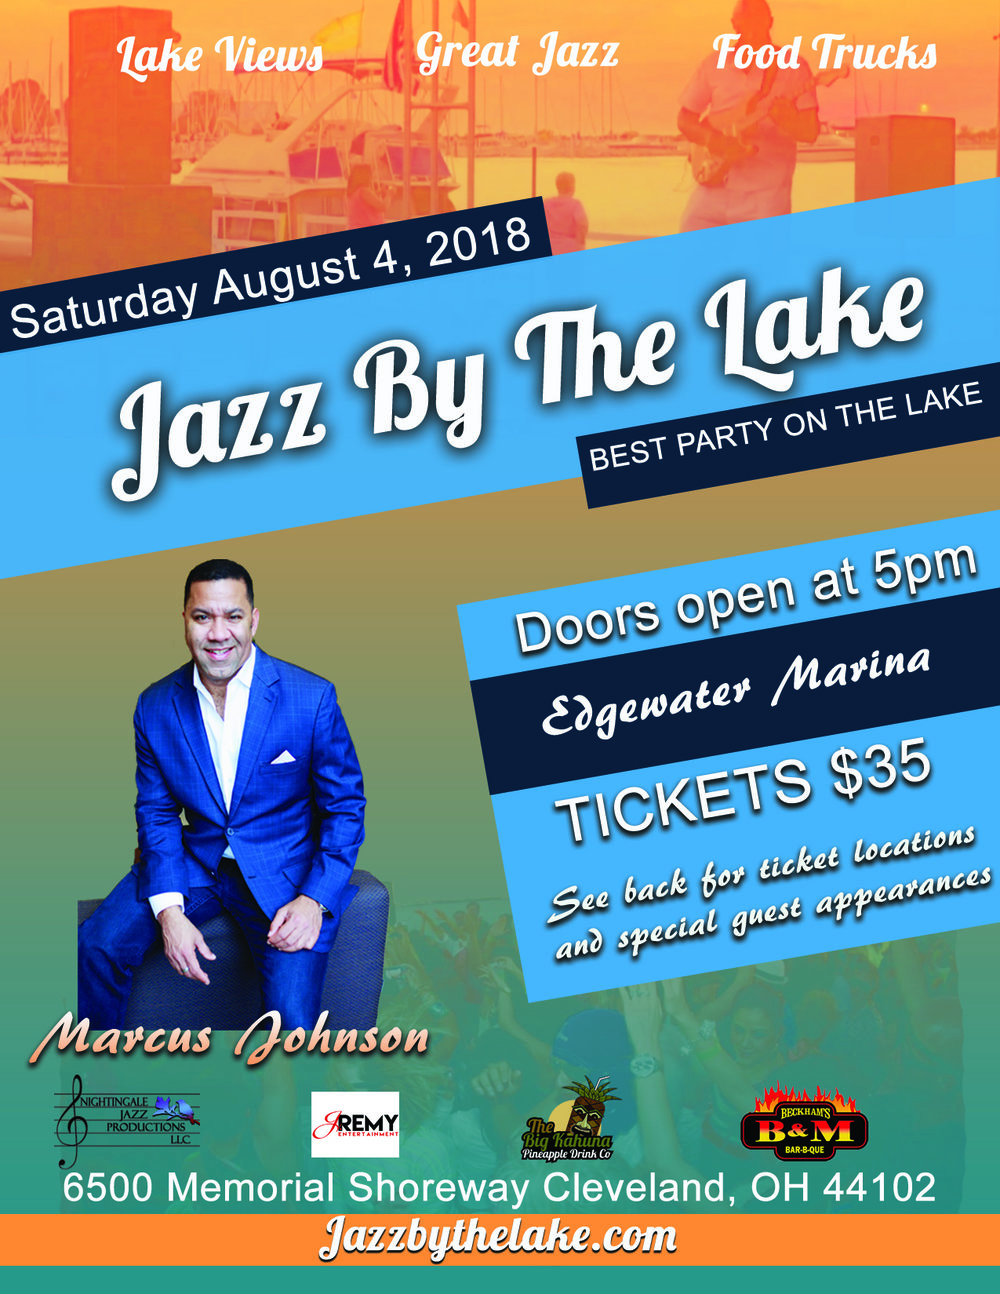 The Rhythms & Tides jazz by the lake concert is back and better than ever for its 7th year.  Get ready to enjoy a great day of smooth jazz on the amazing Cleveland lakefront at one of the city's hottest marinas.  This year we've pulled out all the the stops and put together an all star lineup you will be sure to love. Special guest appearances by Robert Hubbard Jr, Dave Frankel, Herb wilborn Jr,  Tony Watson Jr plus new up and comer Tyrone G to name a few. Headlining the show will be none other than the world renowned Marcus Johnson.  Marcus Johnson is an independent Billboard-ranked, internationally acclaimed jazz keyboardist, and NAACP Image Award Nominee.  To date, Marcus has released more than fifteen Billboard charted CDs, and has the distinction of having his groundbreaking 2008 Billboard Top 20 Contemporary Jazz FLO (For the Love Of) Anthology, which consisted of three distinct CDs -- FLO Chill, FLO Romance and FLO Standards - all chart Top 10 on Billboard Contemporary Jazz Charts simultaneously.      As always gourmet food trucks will be on site to provide guests with delicious food and drinks .  We ask that you do not bring outside food or beverages inside the marina .   Seating is general admission so purchase tickets in advance and arrive early for best seating. Guest may also bring their own seating as well.    Looking forward to seeing you there    - TEAM NIGHTINGALE